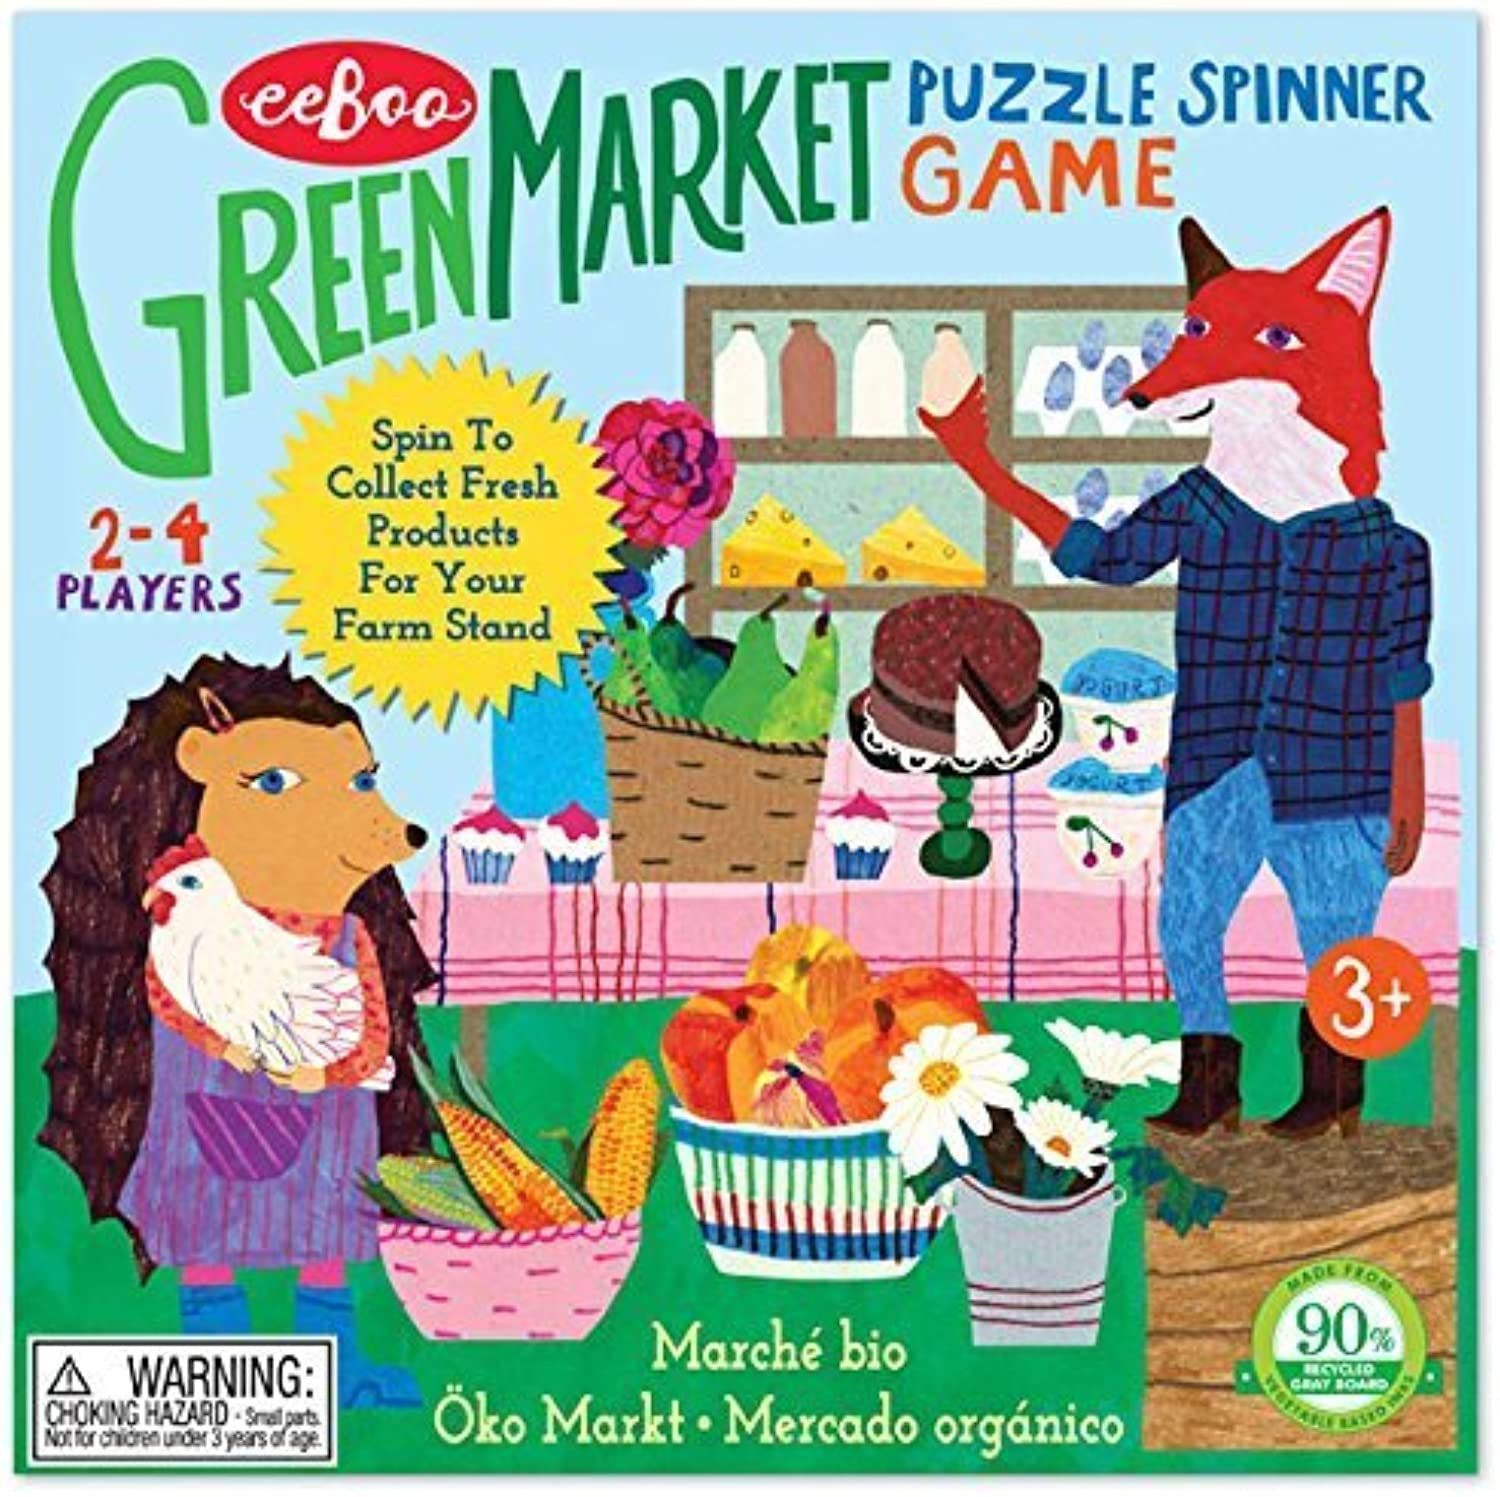 Green Market Puzzle Spinner Game by eeBoo